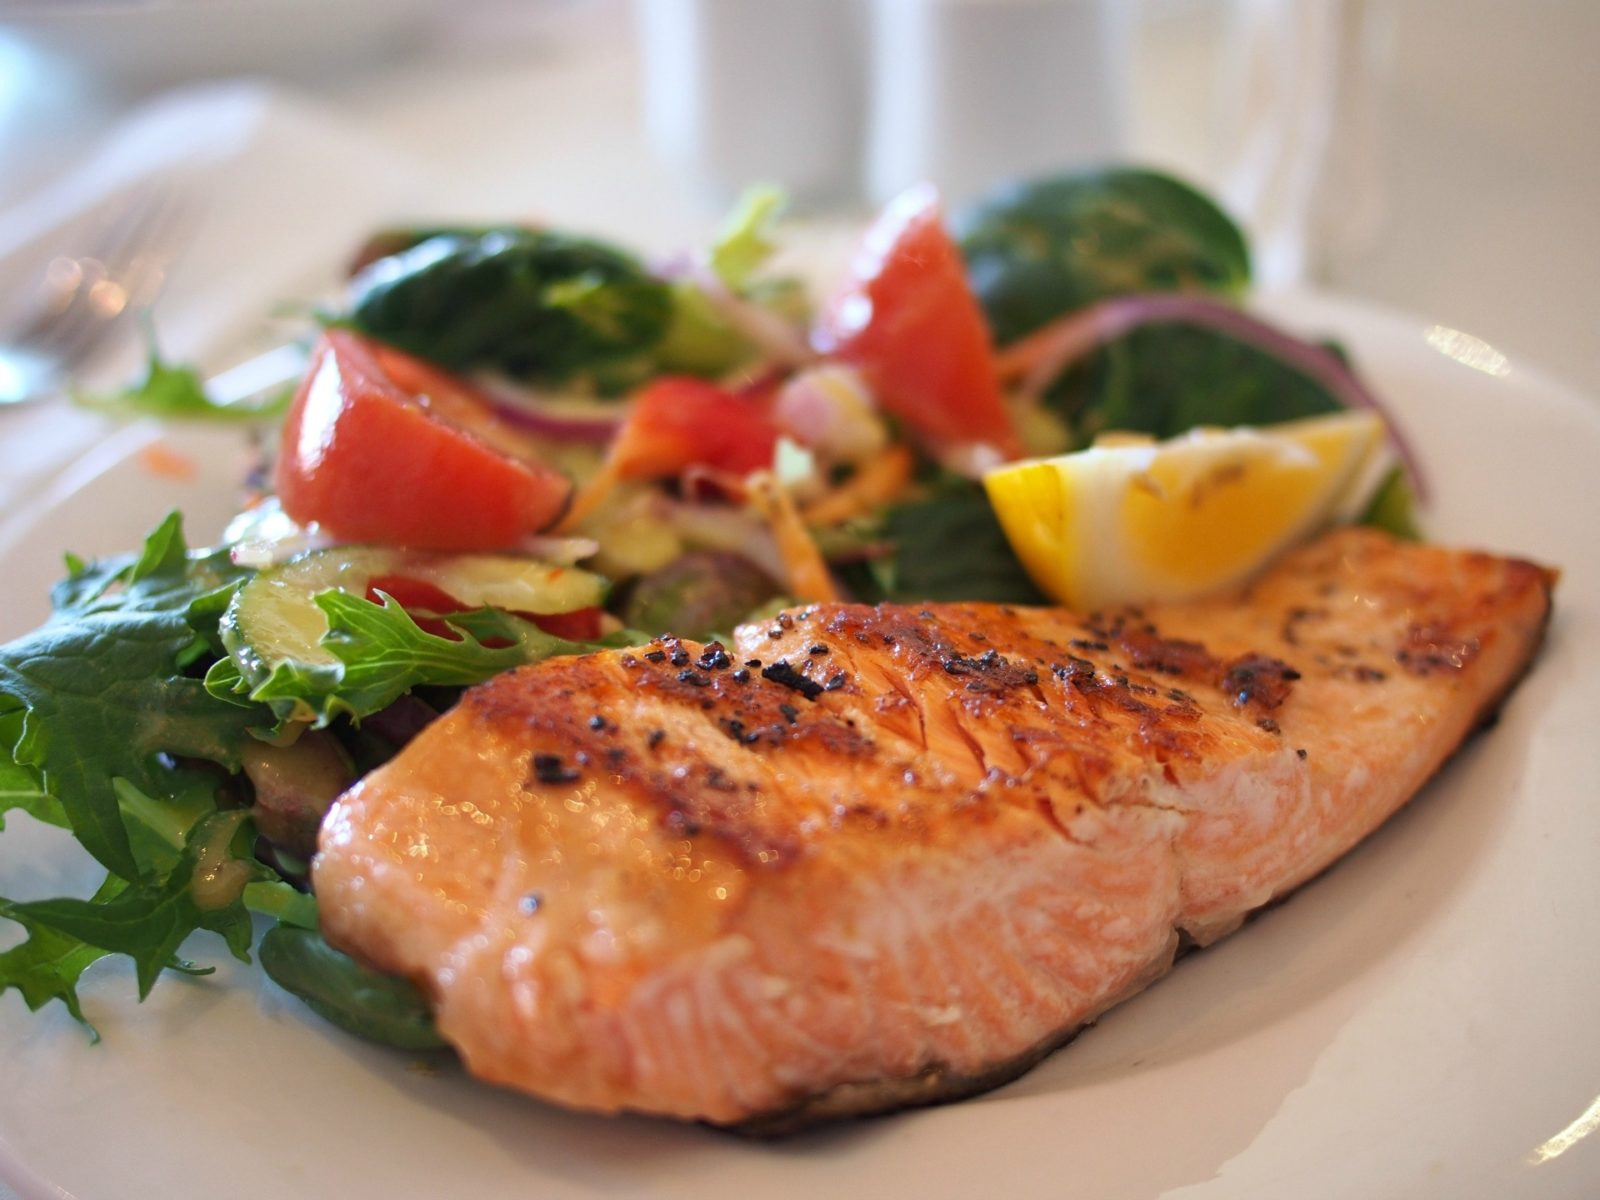 Foods such as salmon are are rich in omega 3 acid and fatty acids, which may reduce pain and inflammation.